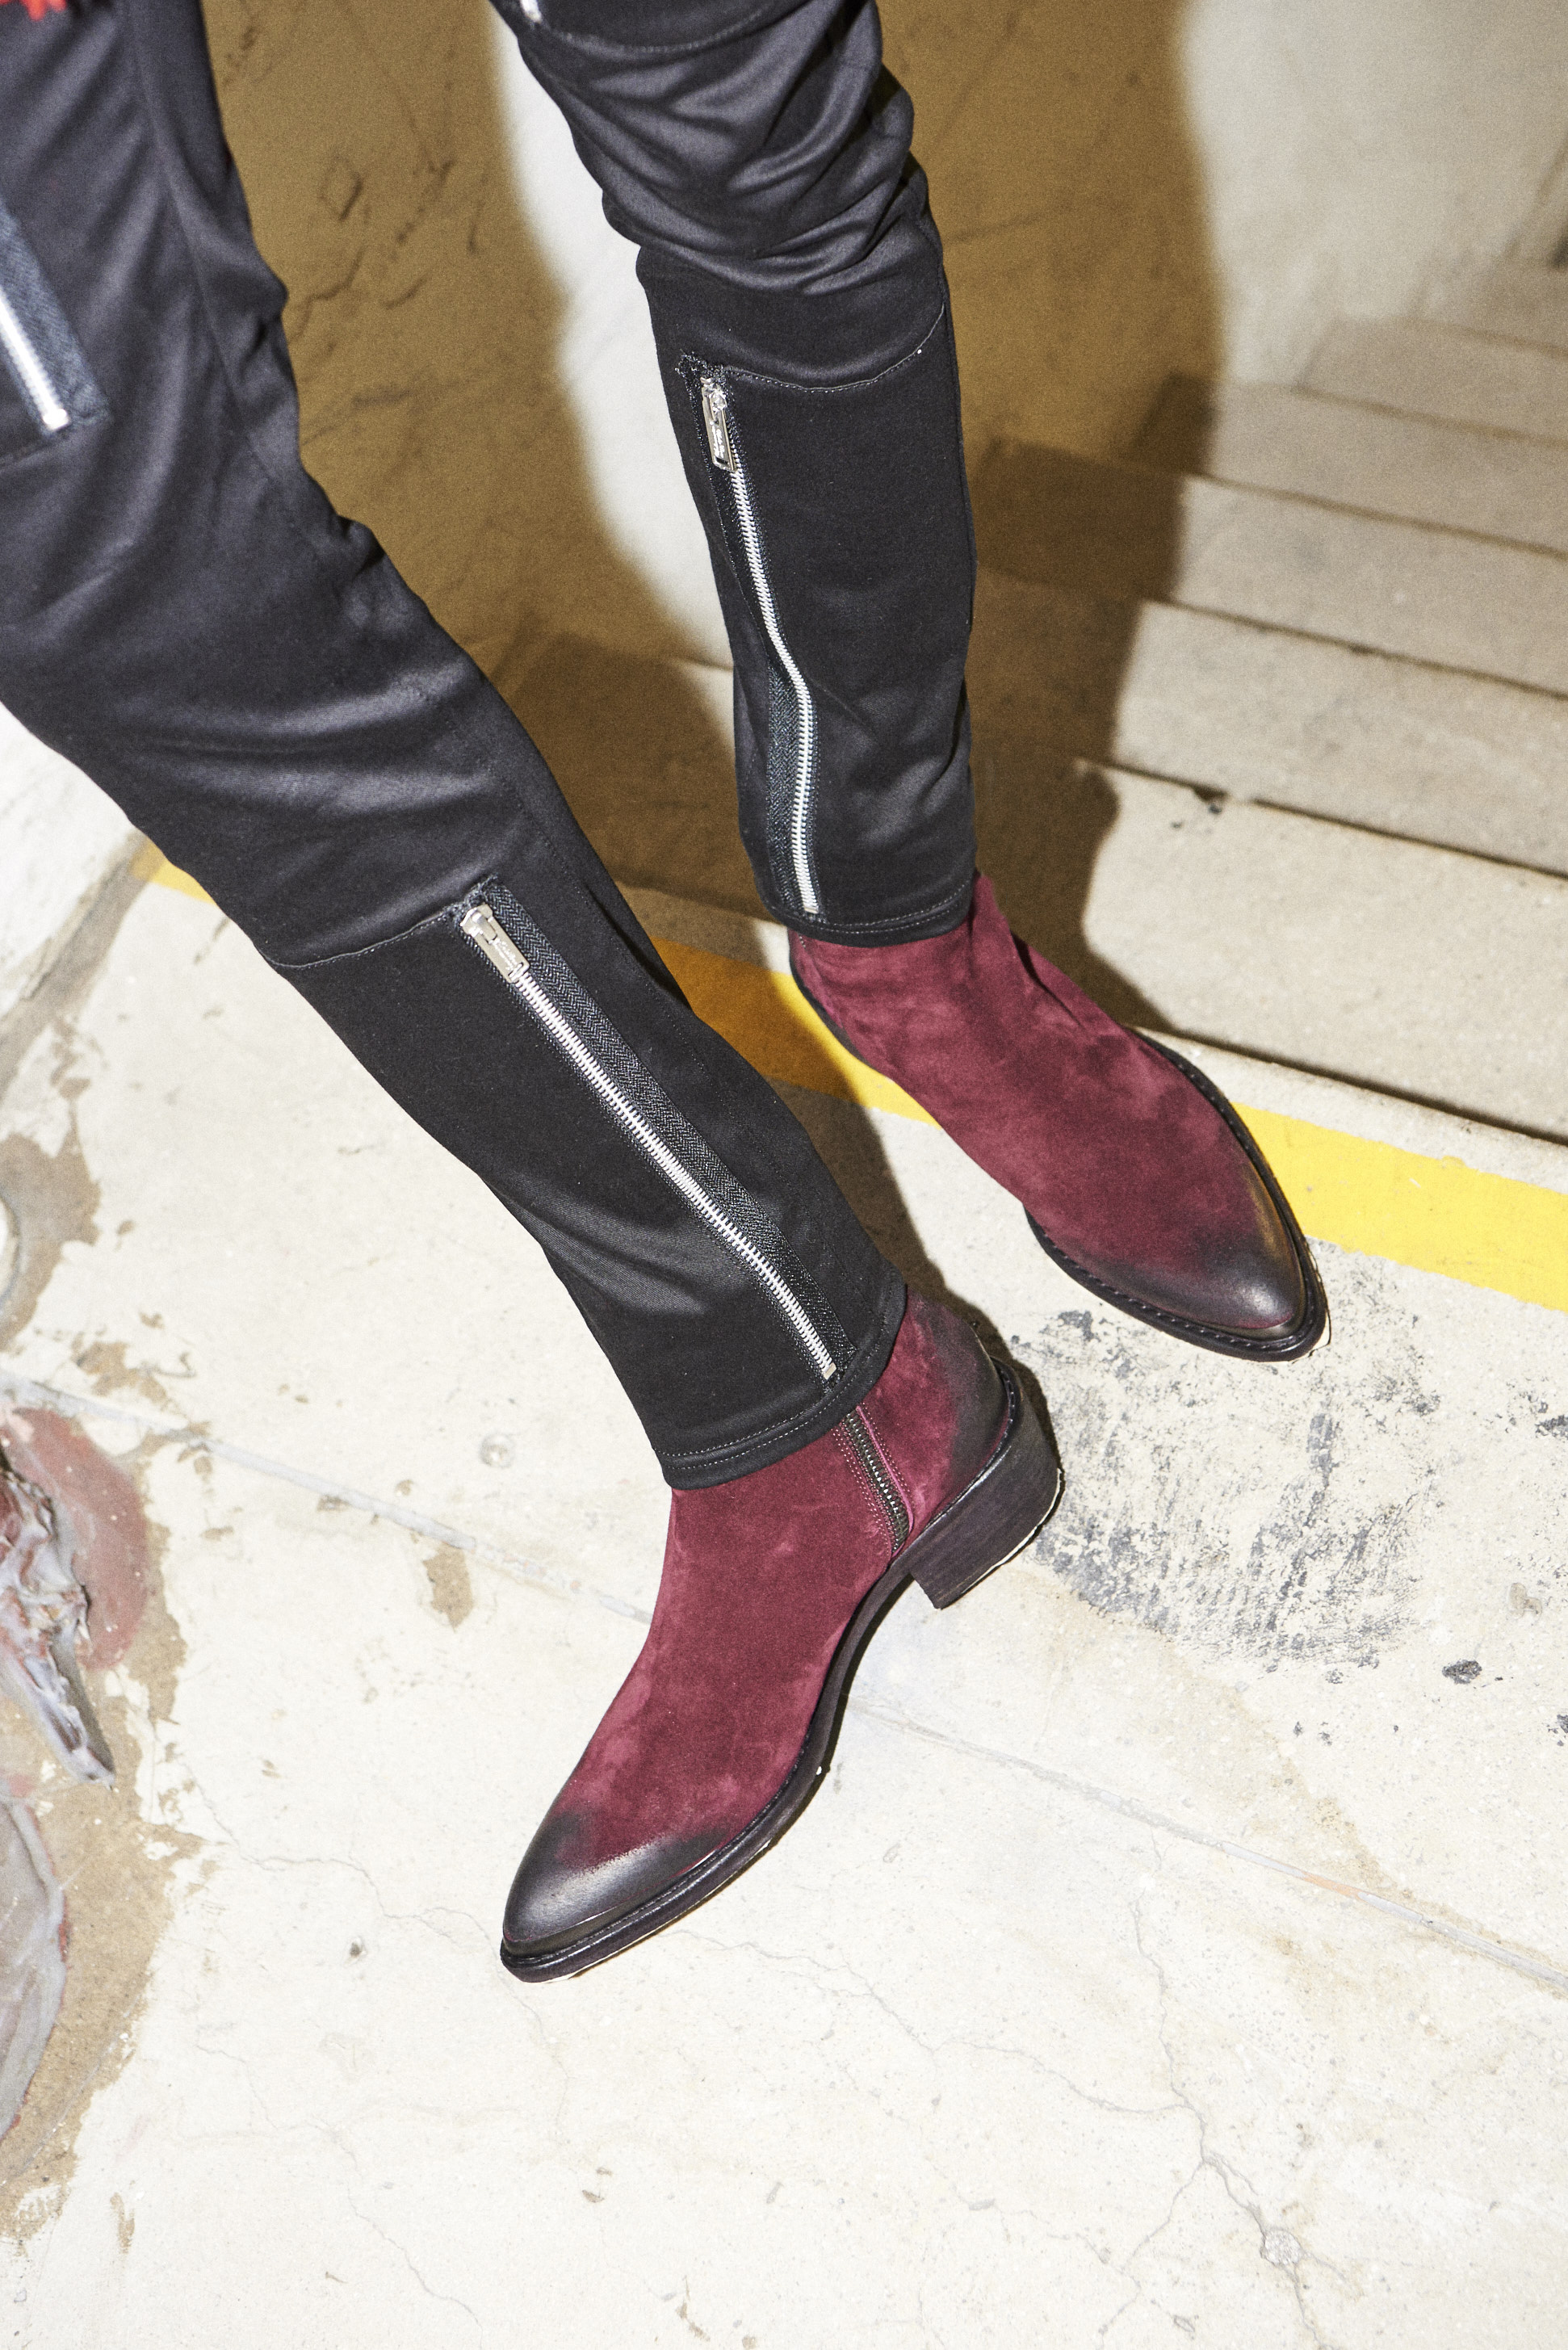 haider ackerman suede boots- undercover trousers fw17 men's clothing h lorenzo